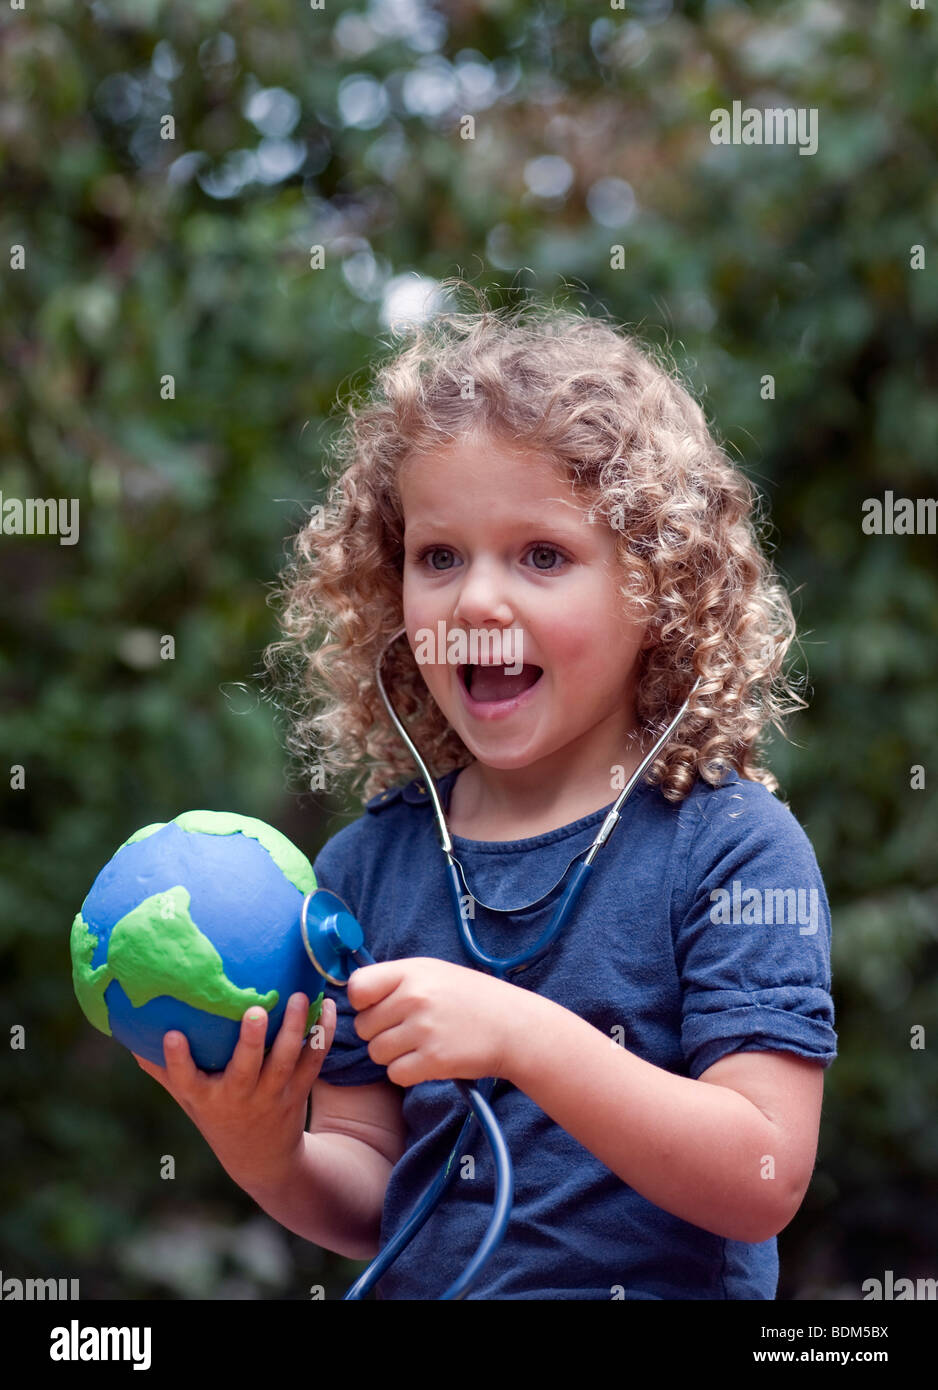 Young child holding a model of planet Earth and checking its health with a stethoscope - Stock Image